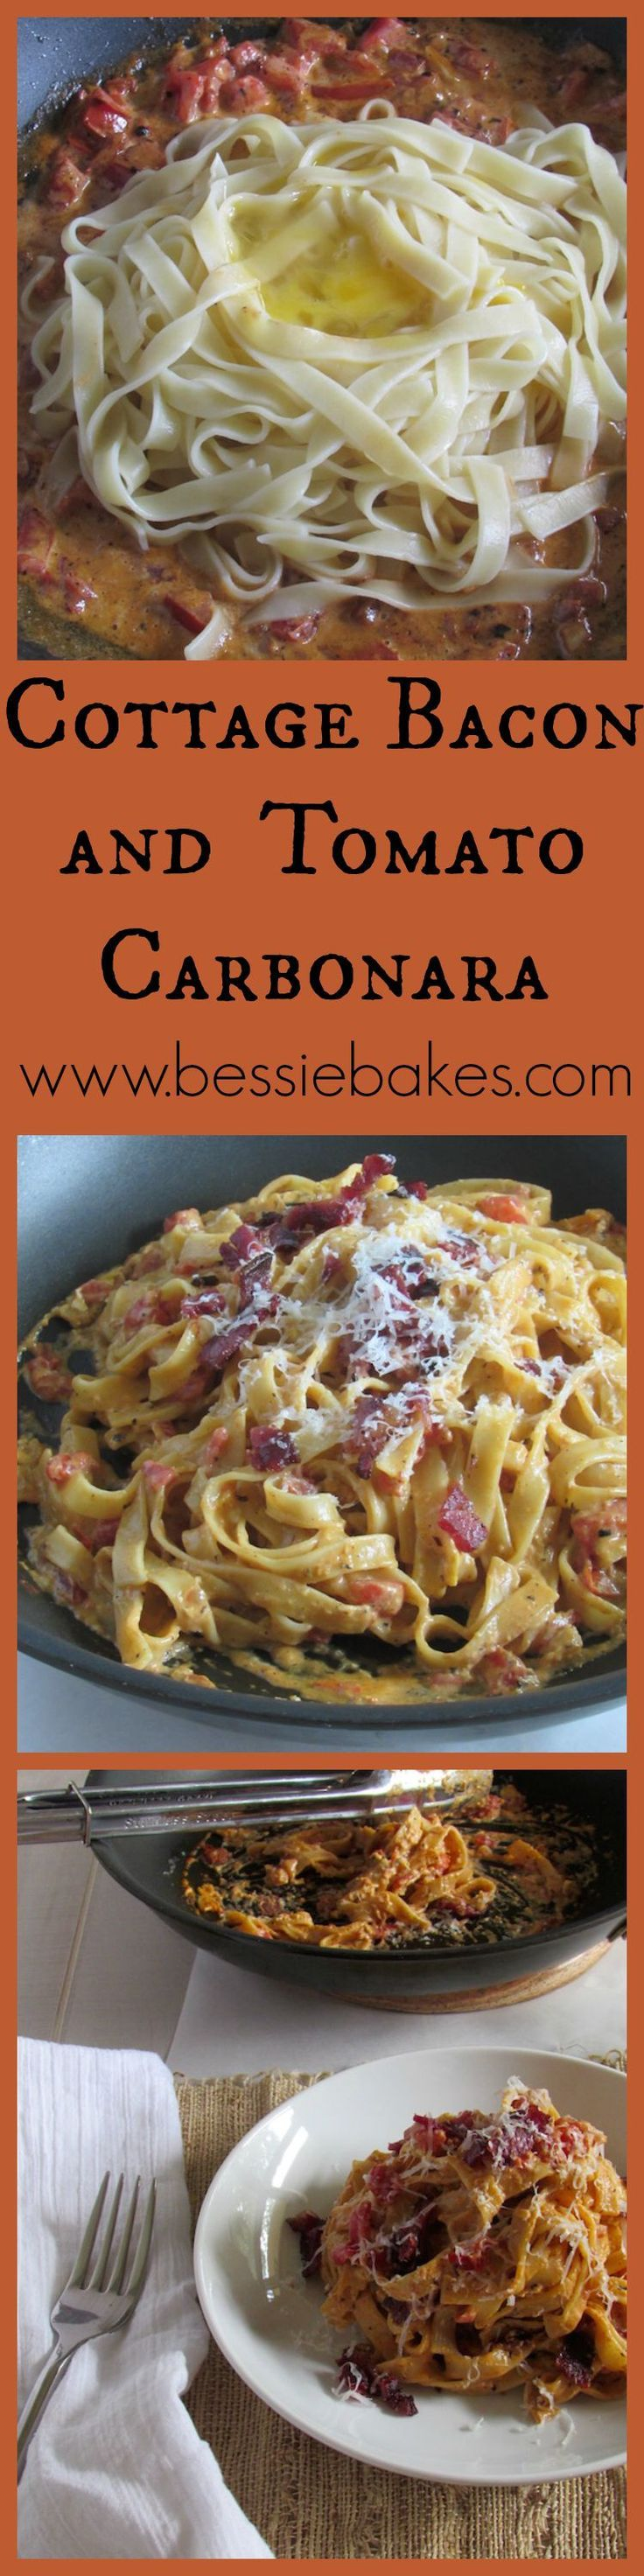 Cottage bacon is the  quot bit ends quot  of the bacon slab  It costs less and is the perfect sub for pancetta  Try this creamy and comforting twist on Carbonara